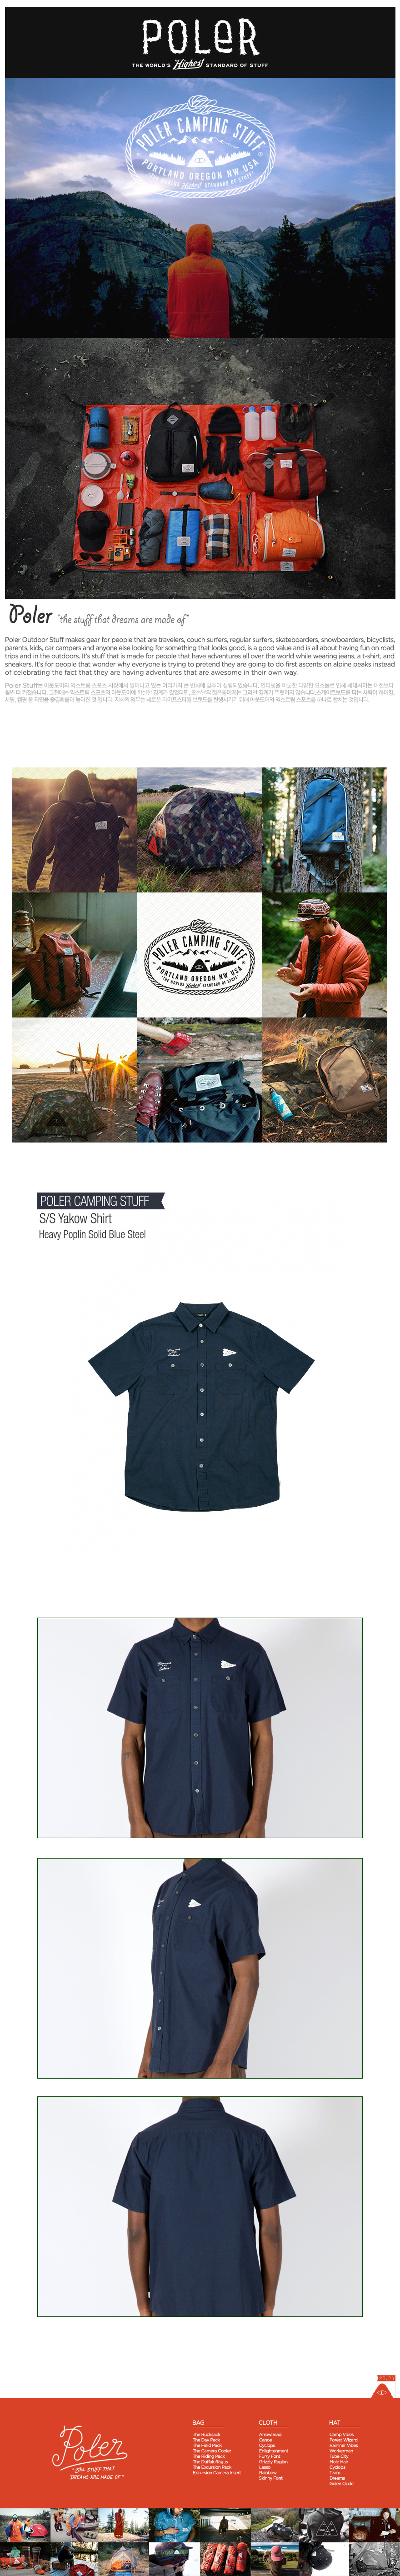 [폴러스터프]POLER STUFF - S/S Yakow Shirt (Heavy Poplin Solid Blue Steel)